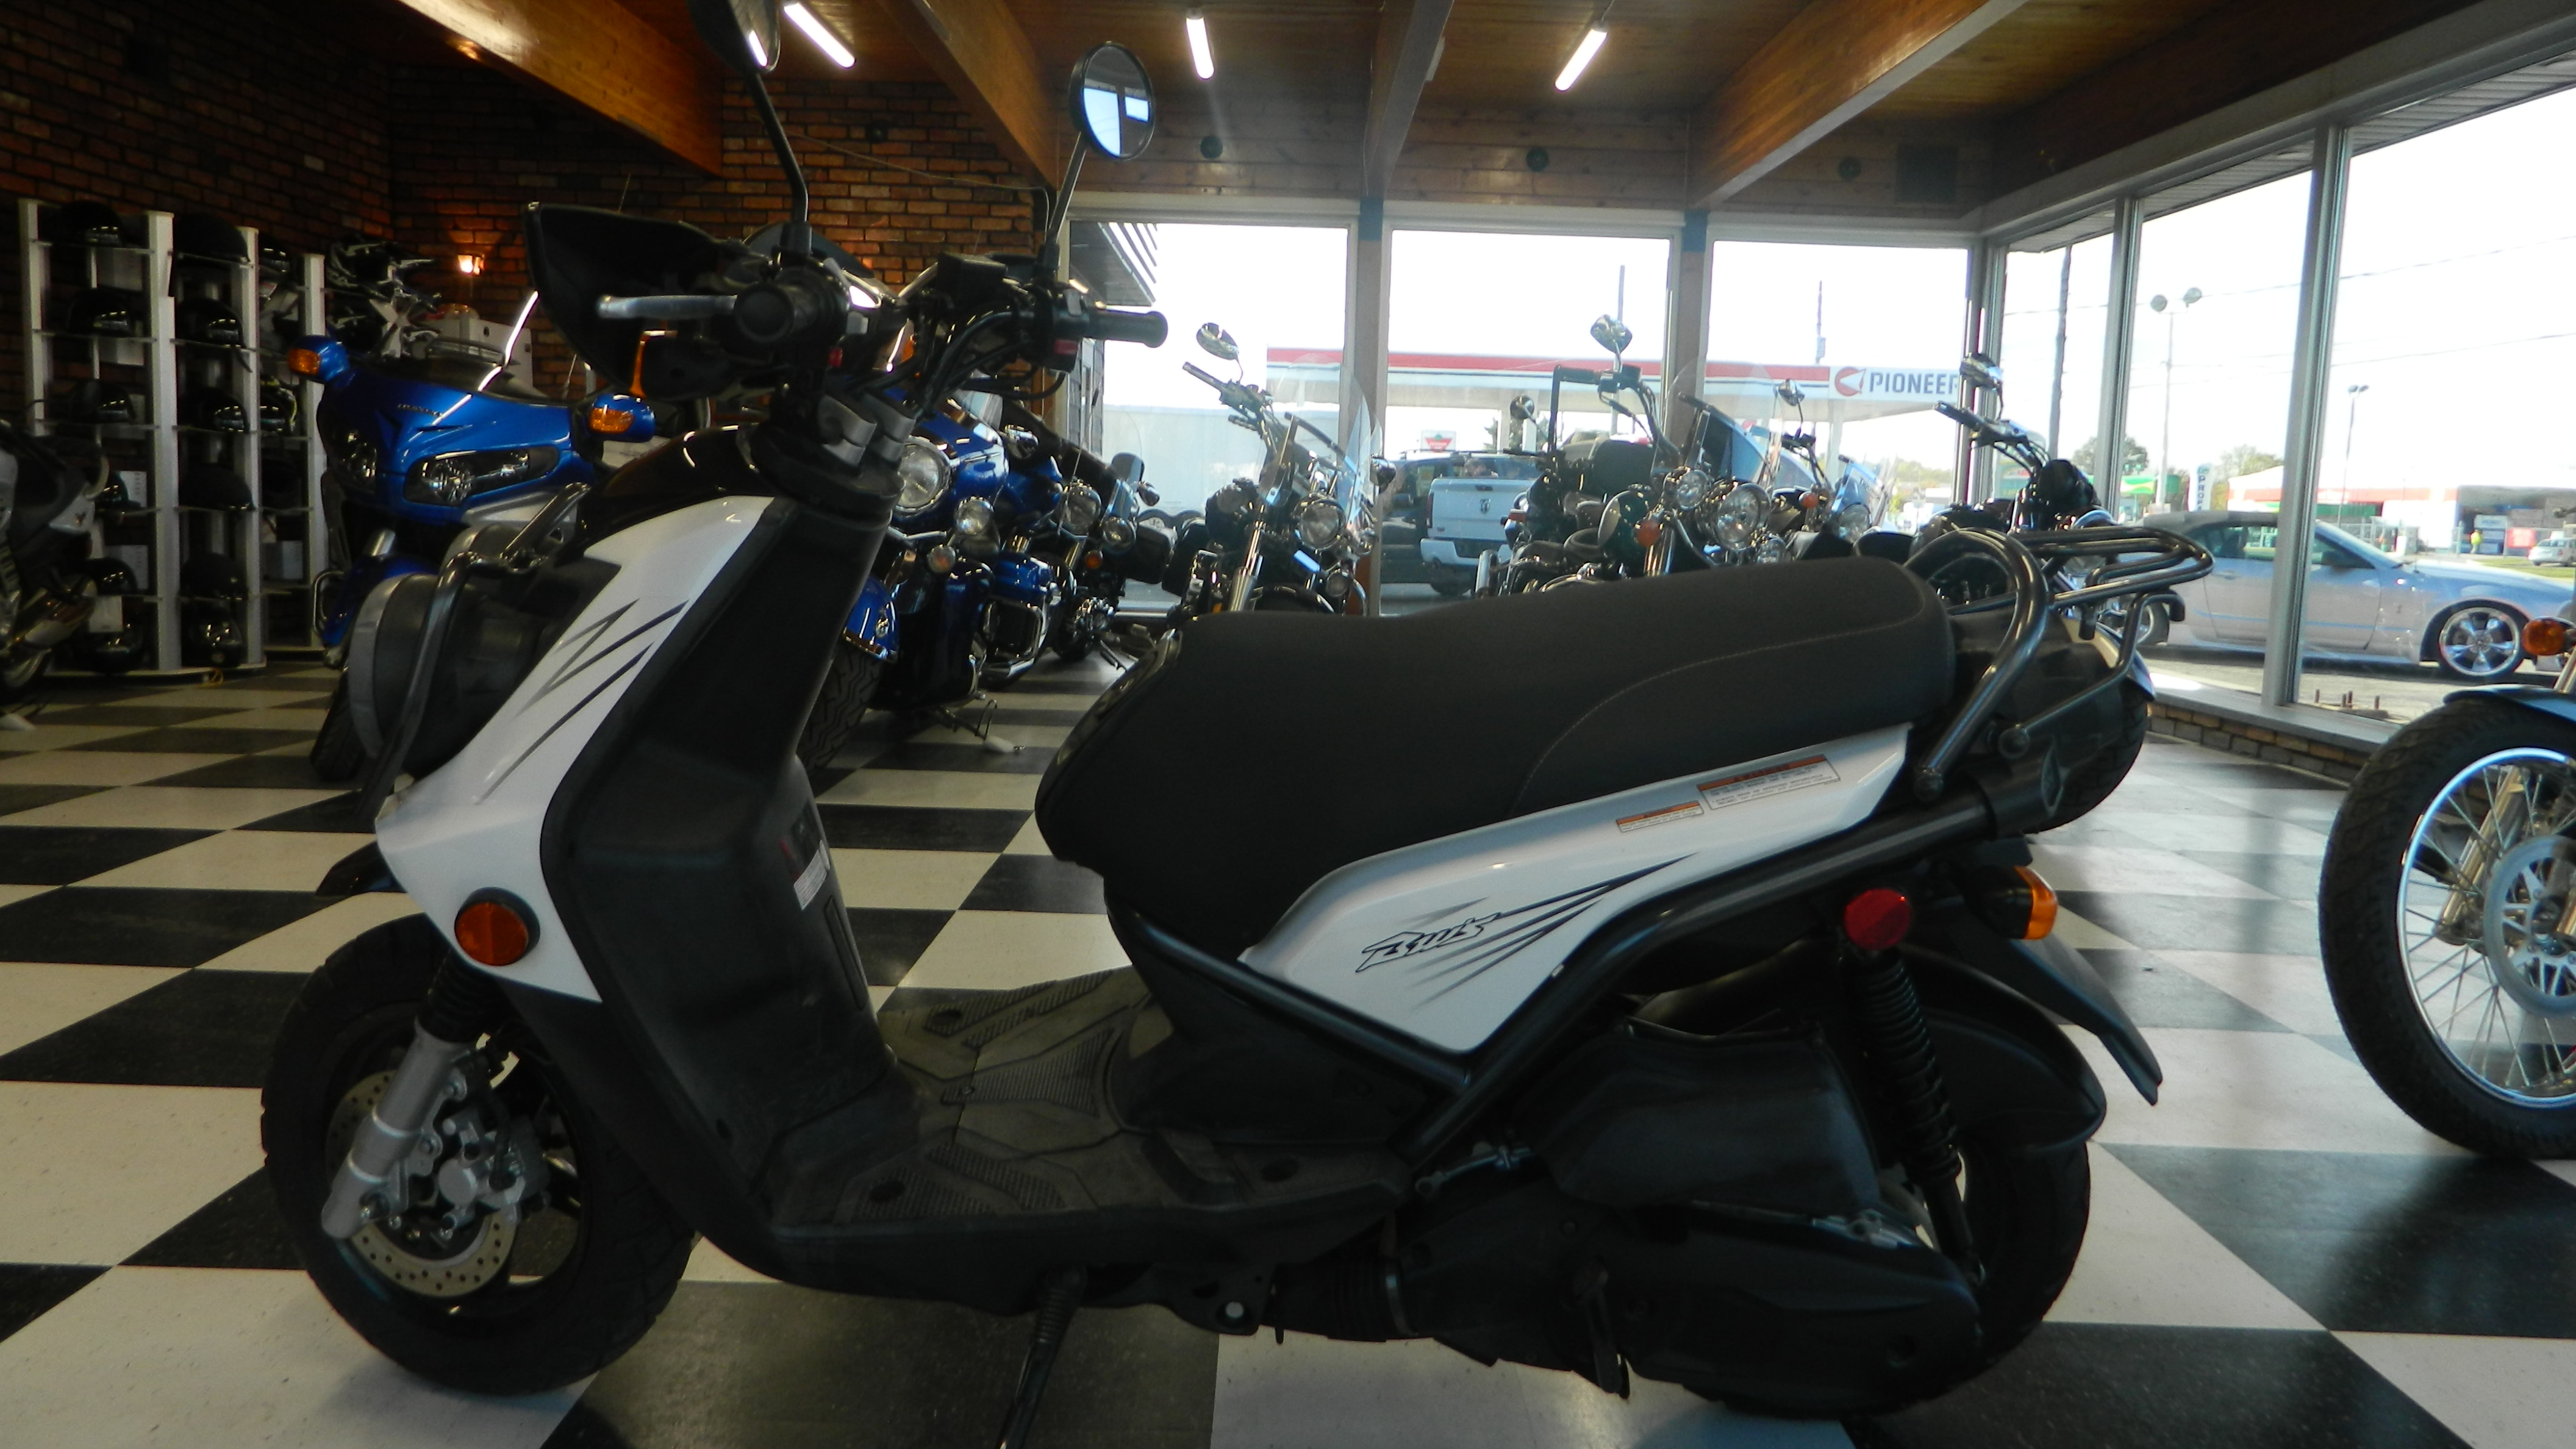 ls650 and scooter building pics 007